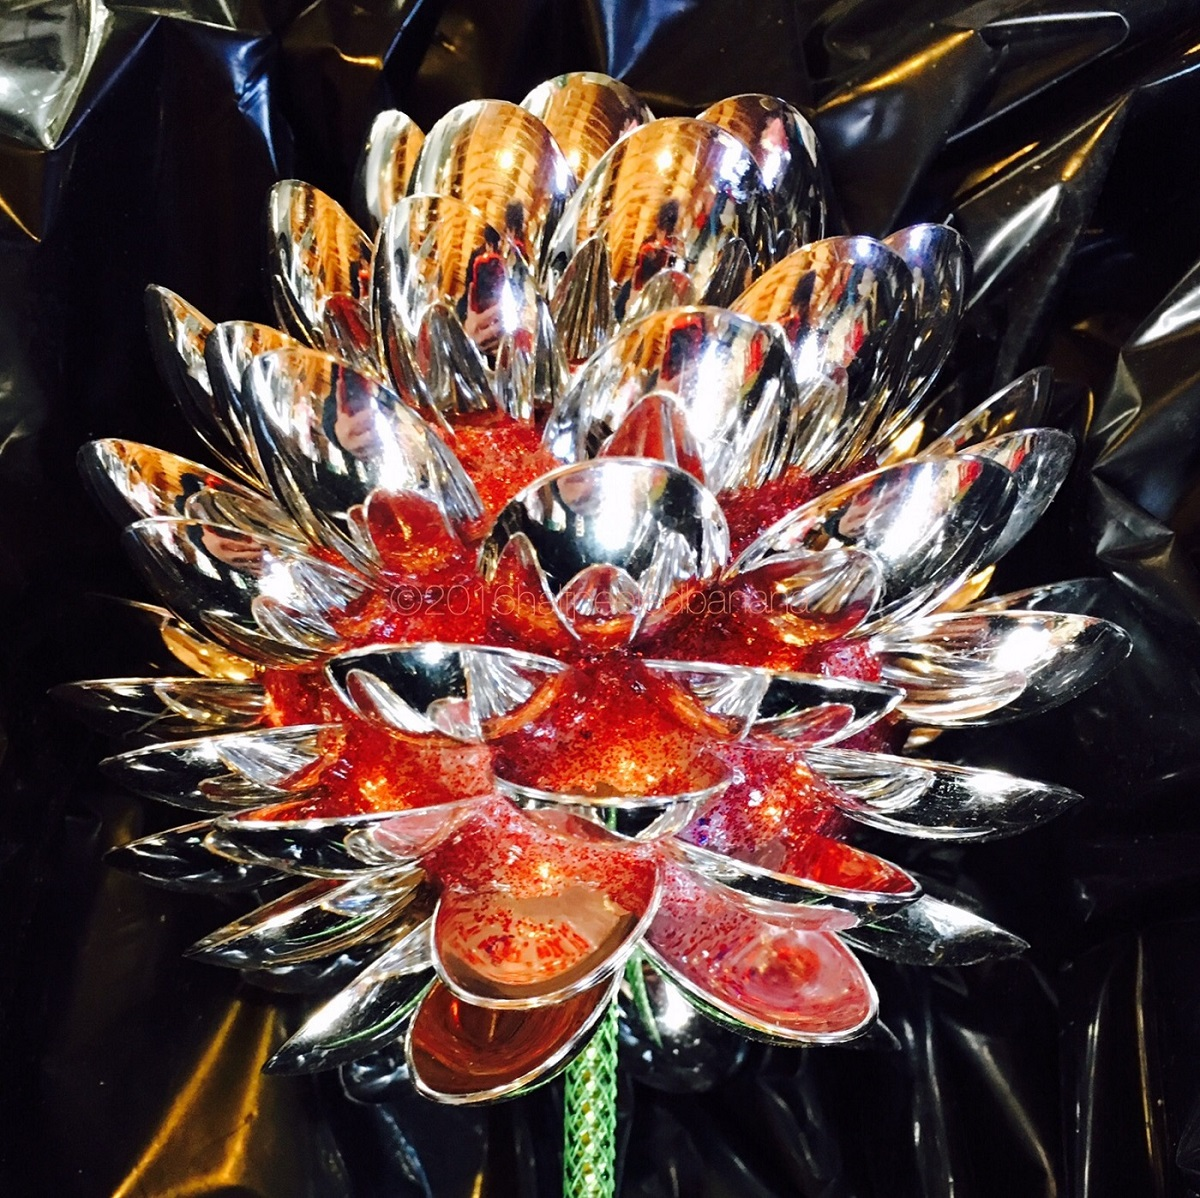 tucson spoons print no. 10 of 5in. garden art made with spoons by ann vanatta gutierrez